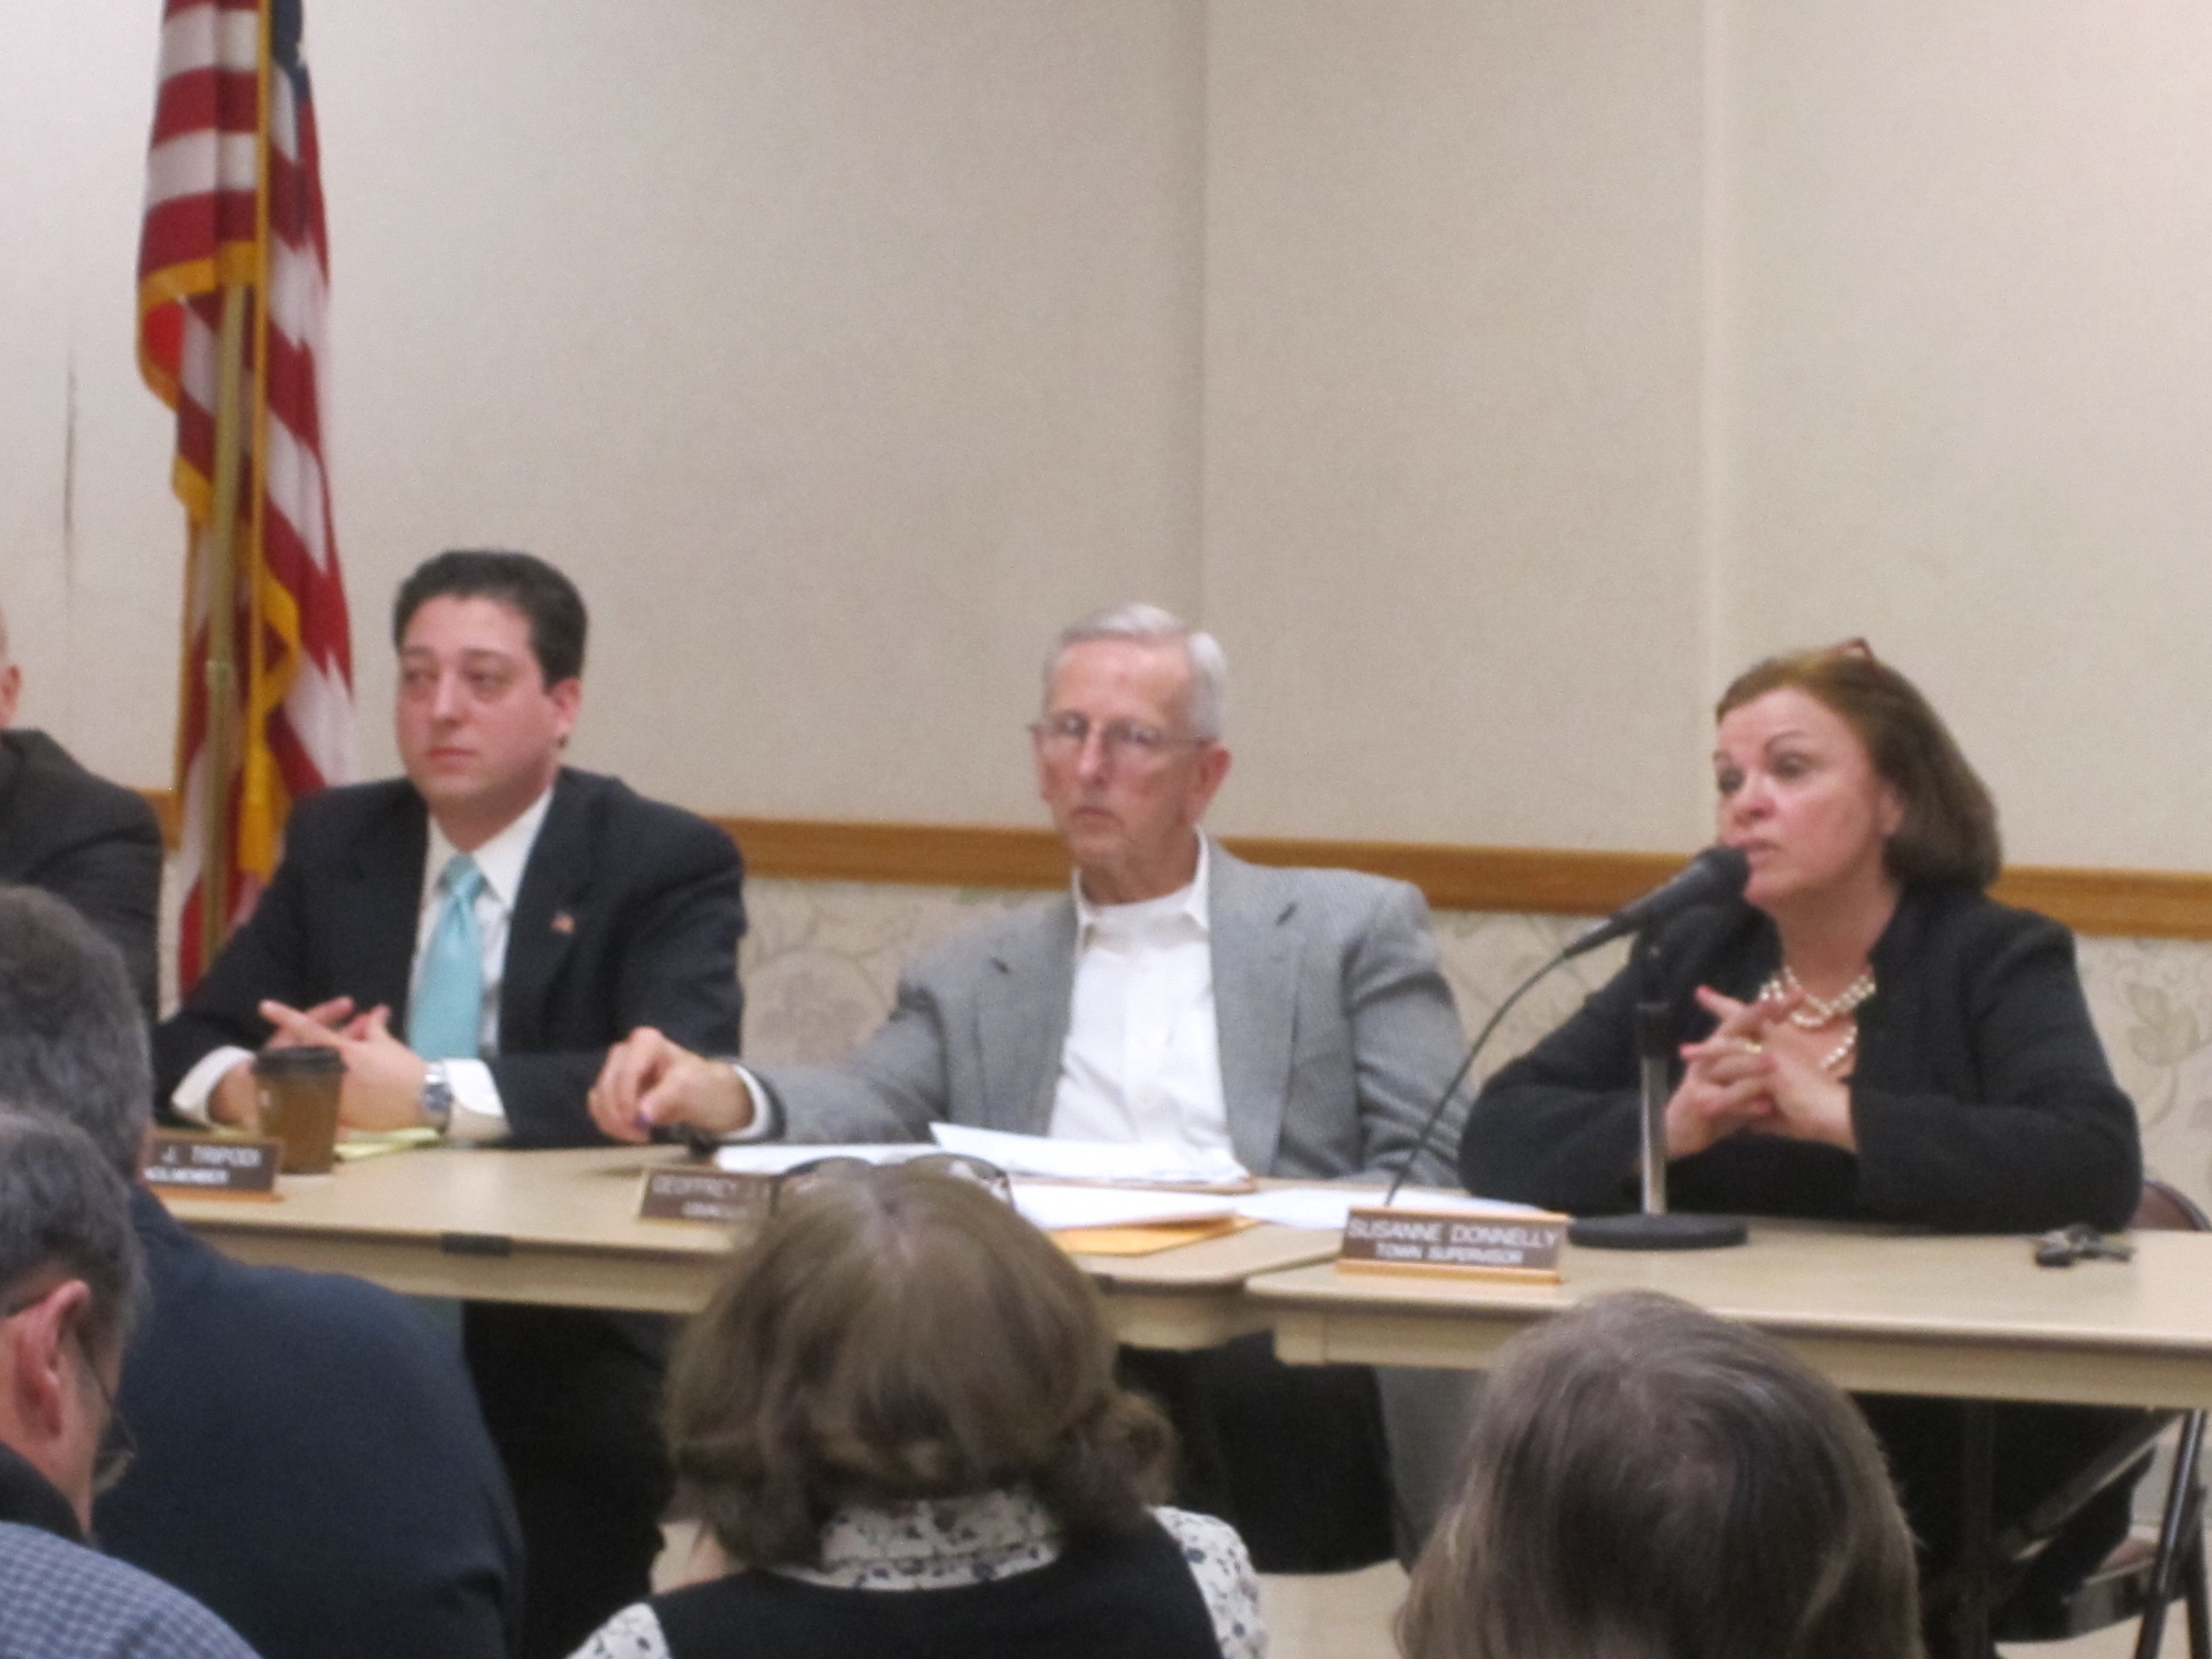 The Ossining Town Board is set to approve the proposed 2013 budget Tuesday night.